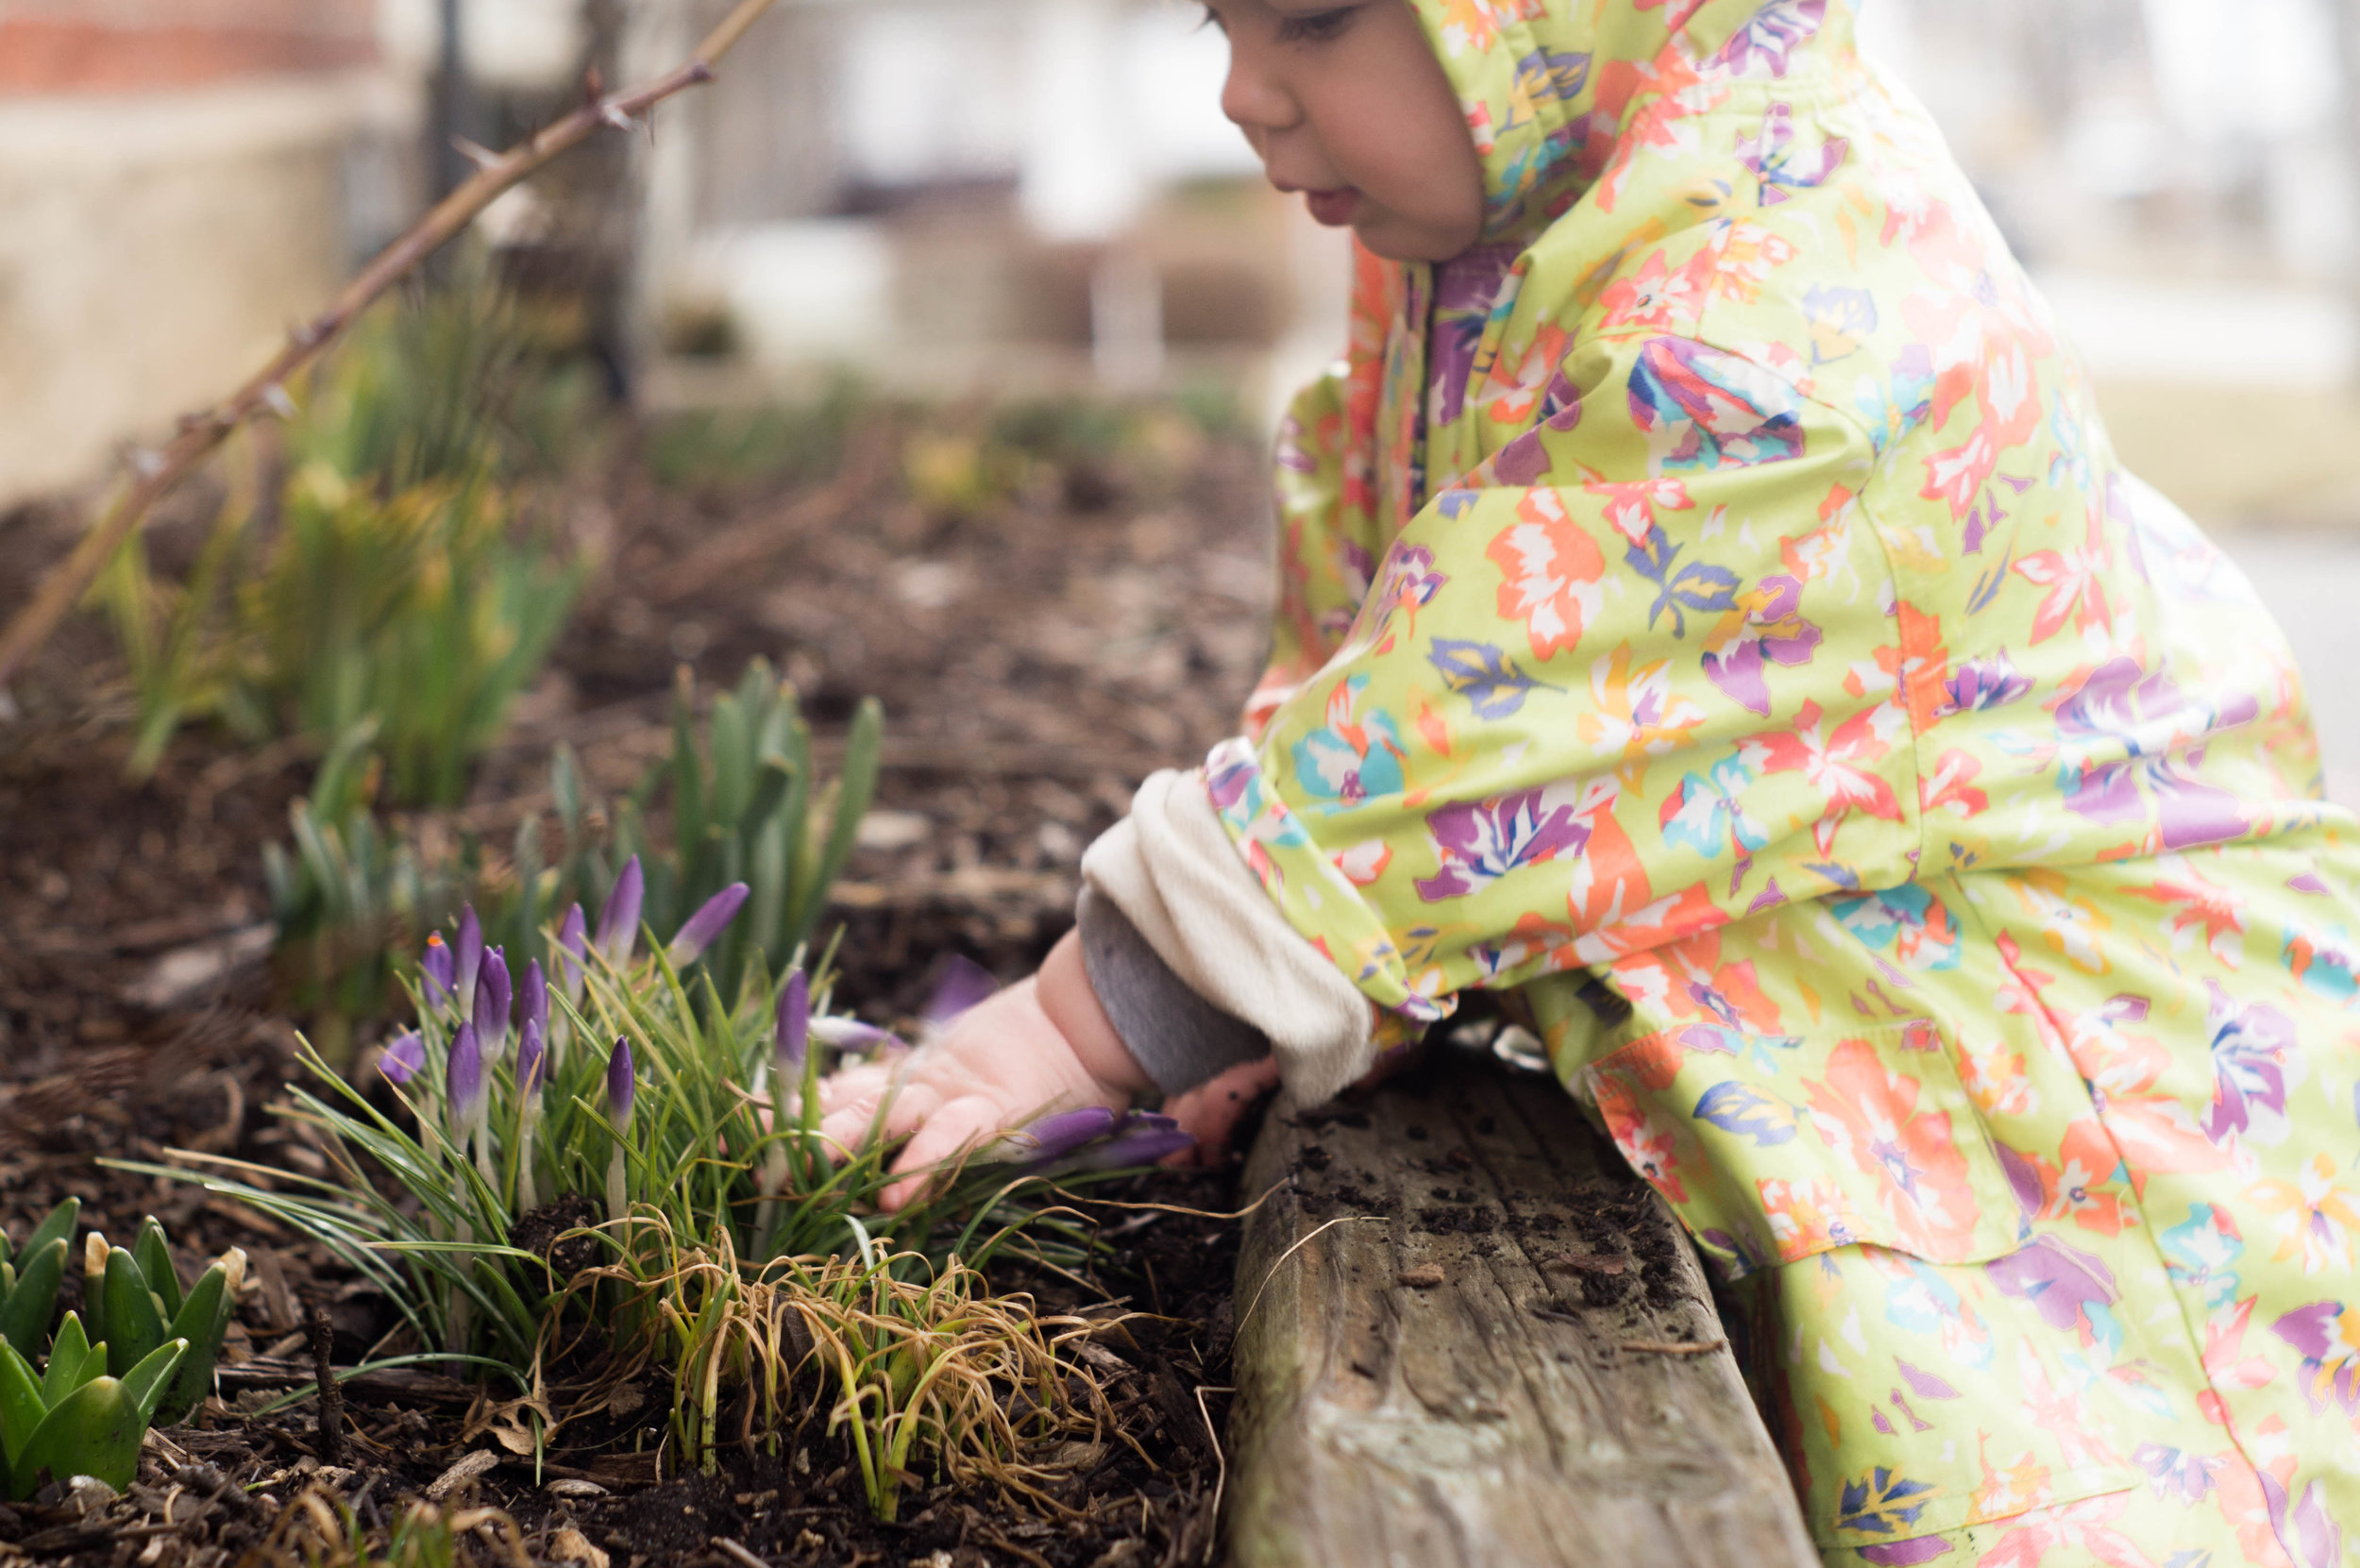 rosemary puts her hands in soil and crocuses image by samantha spigos